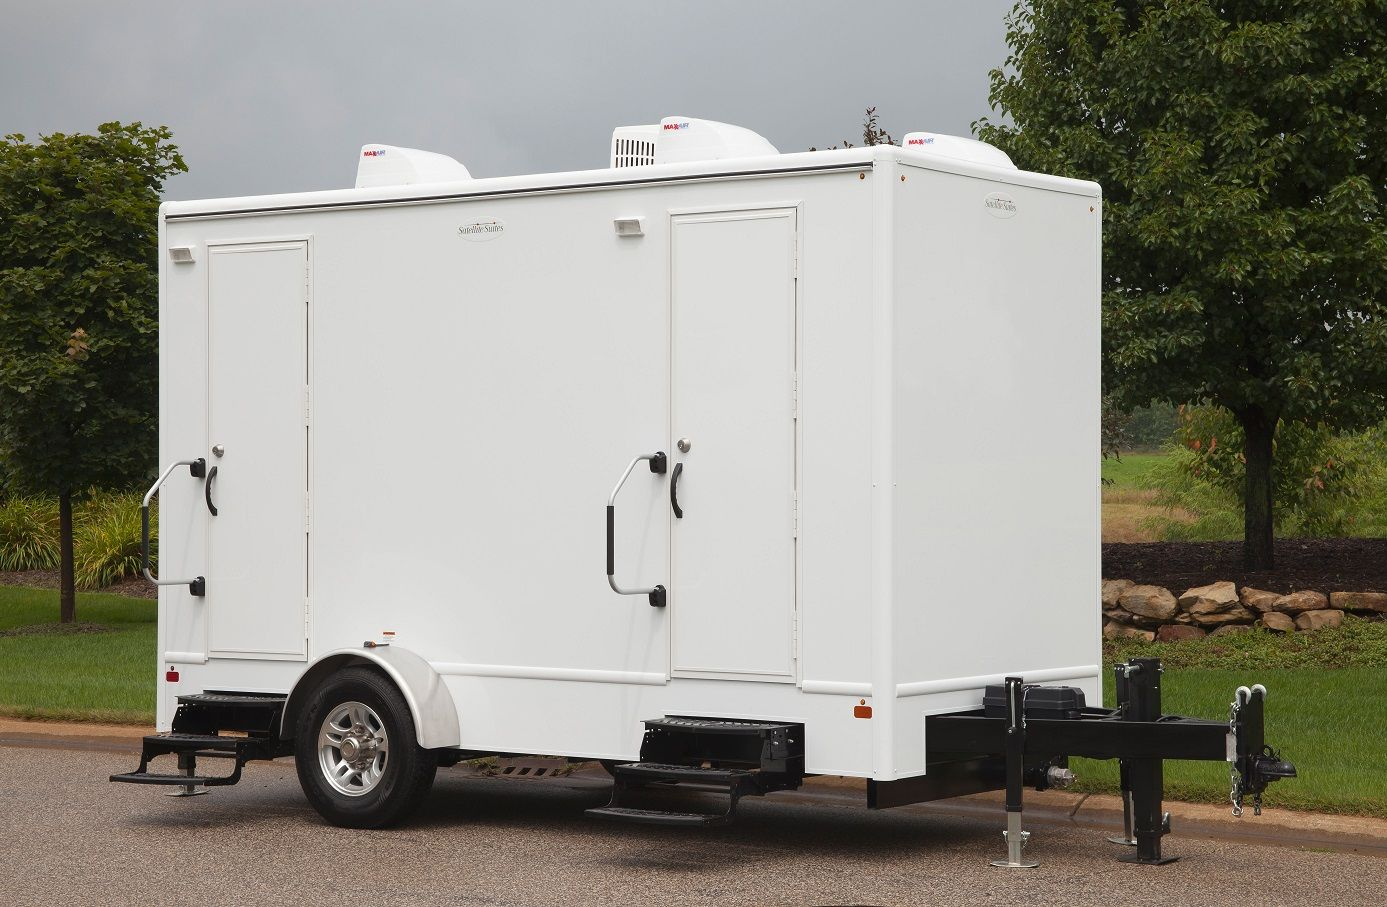 Announcing the powder room restroom trailers sperry tents